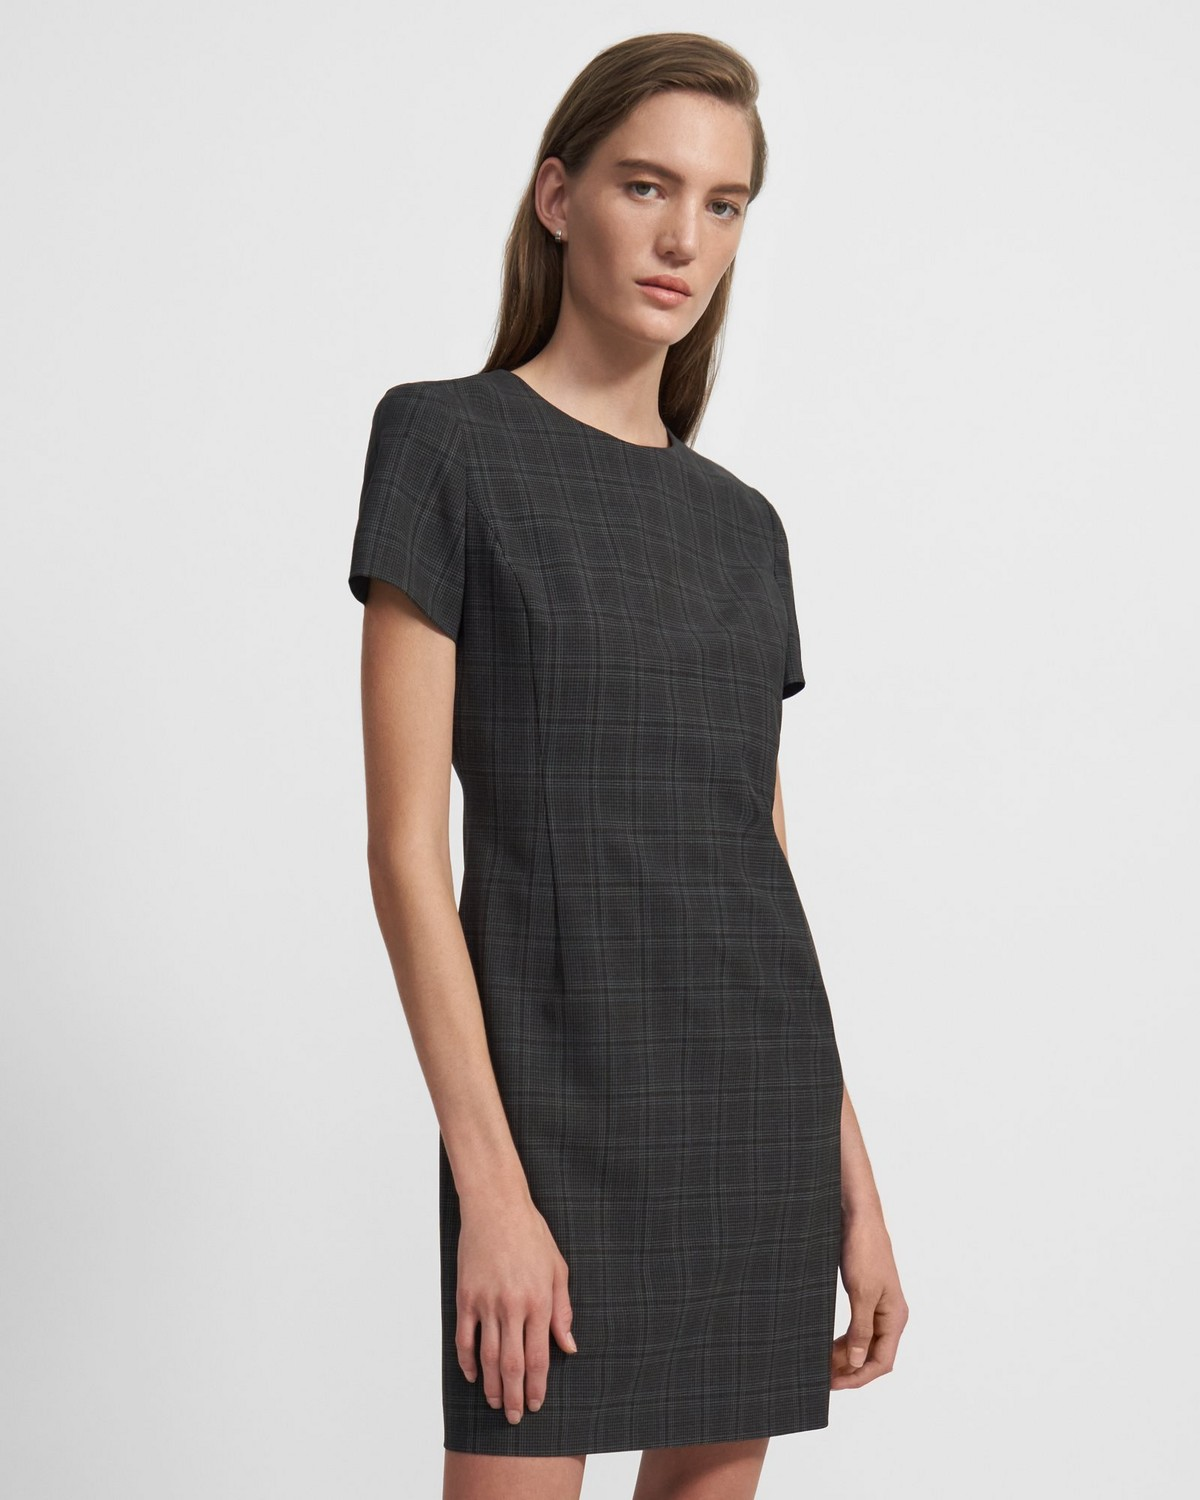 Jatinn Dress in Plaid Good Wool